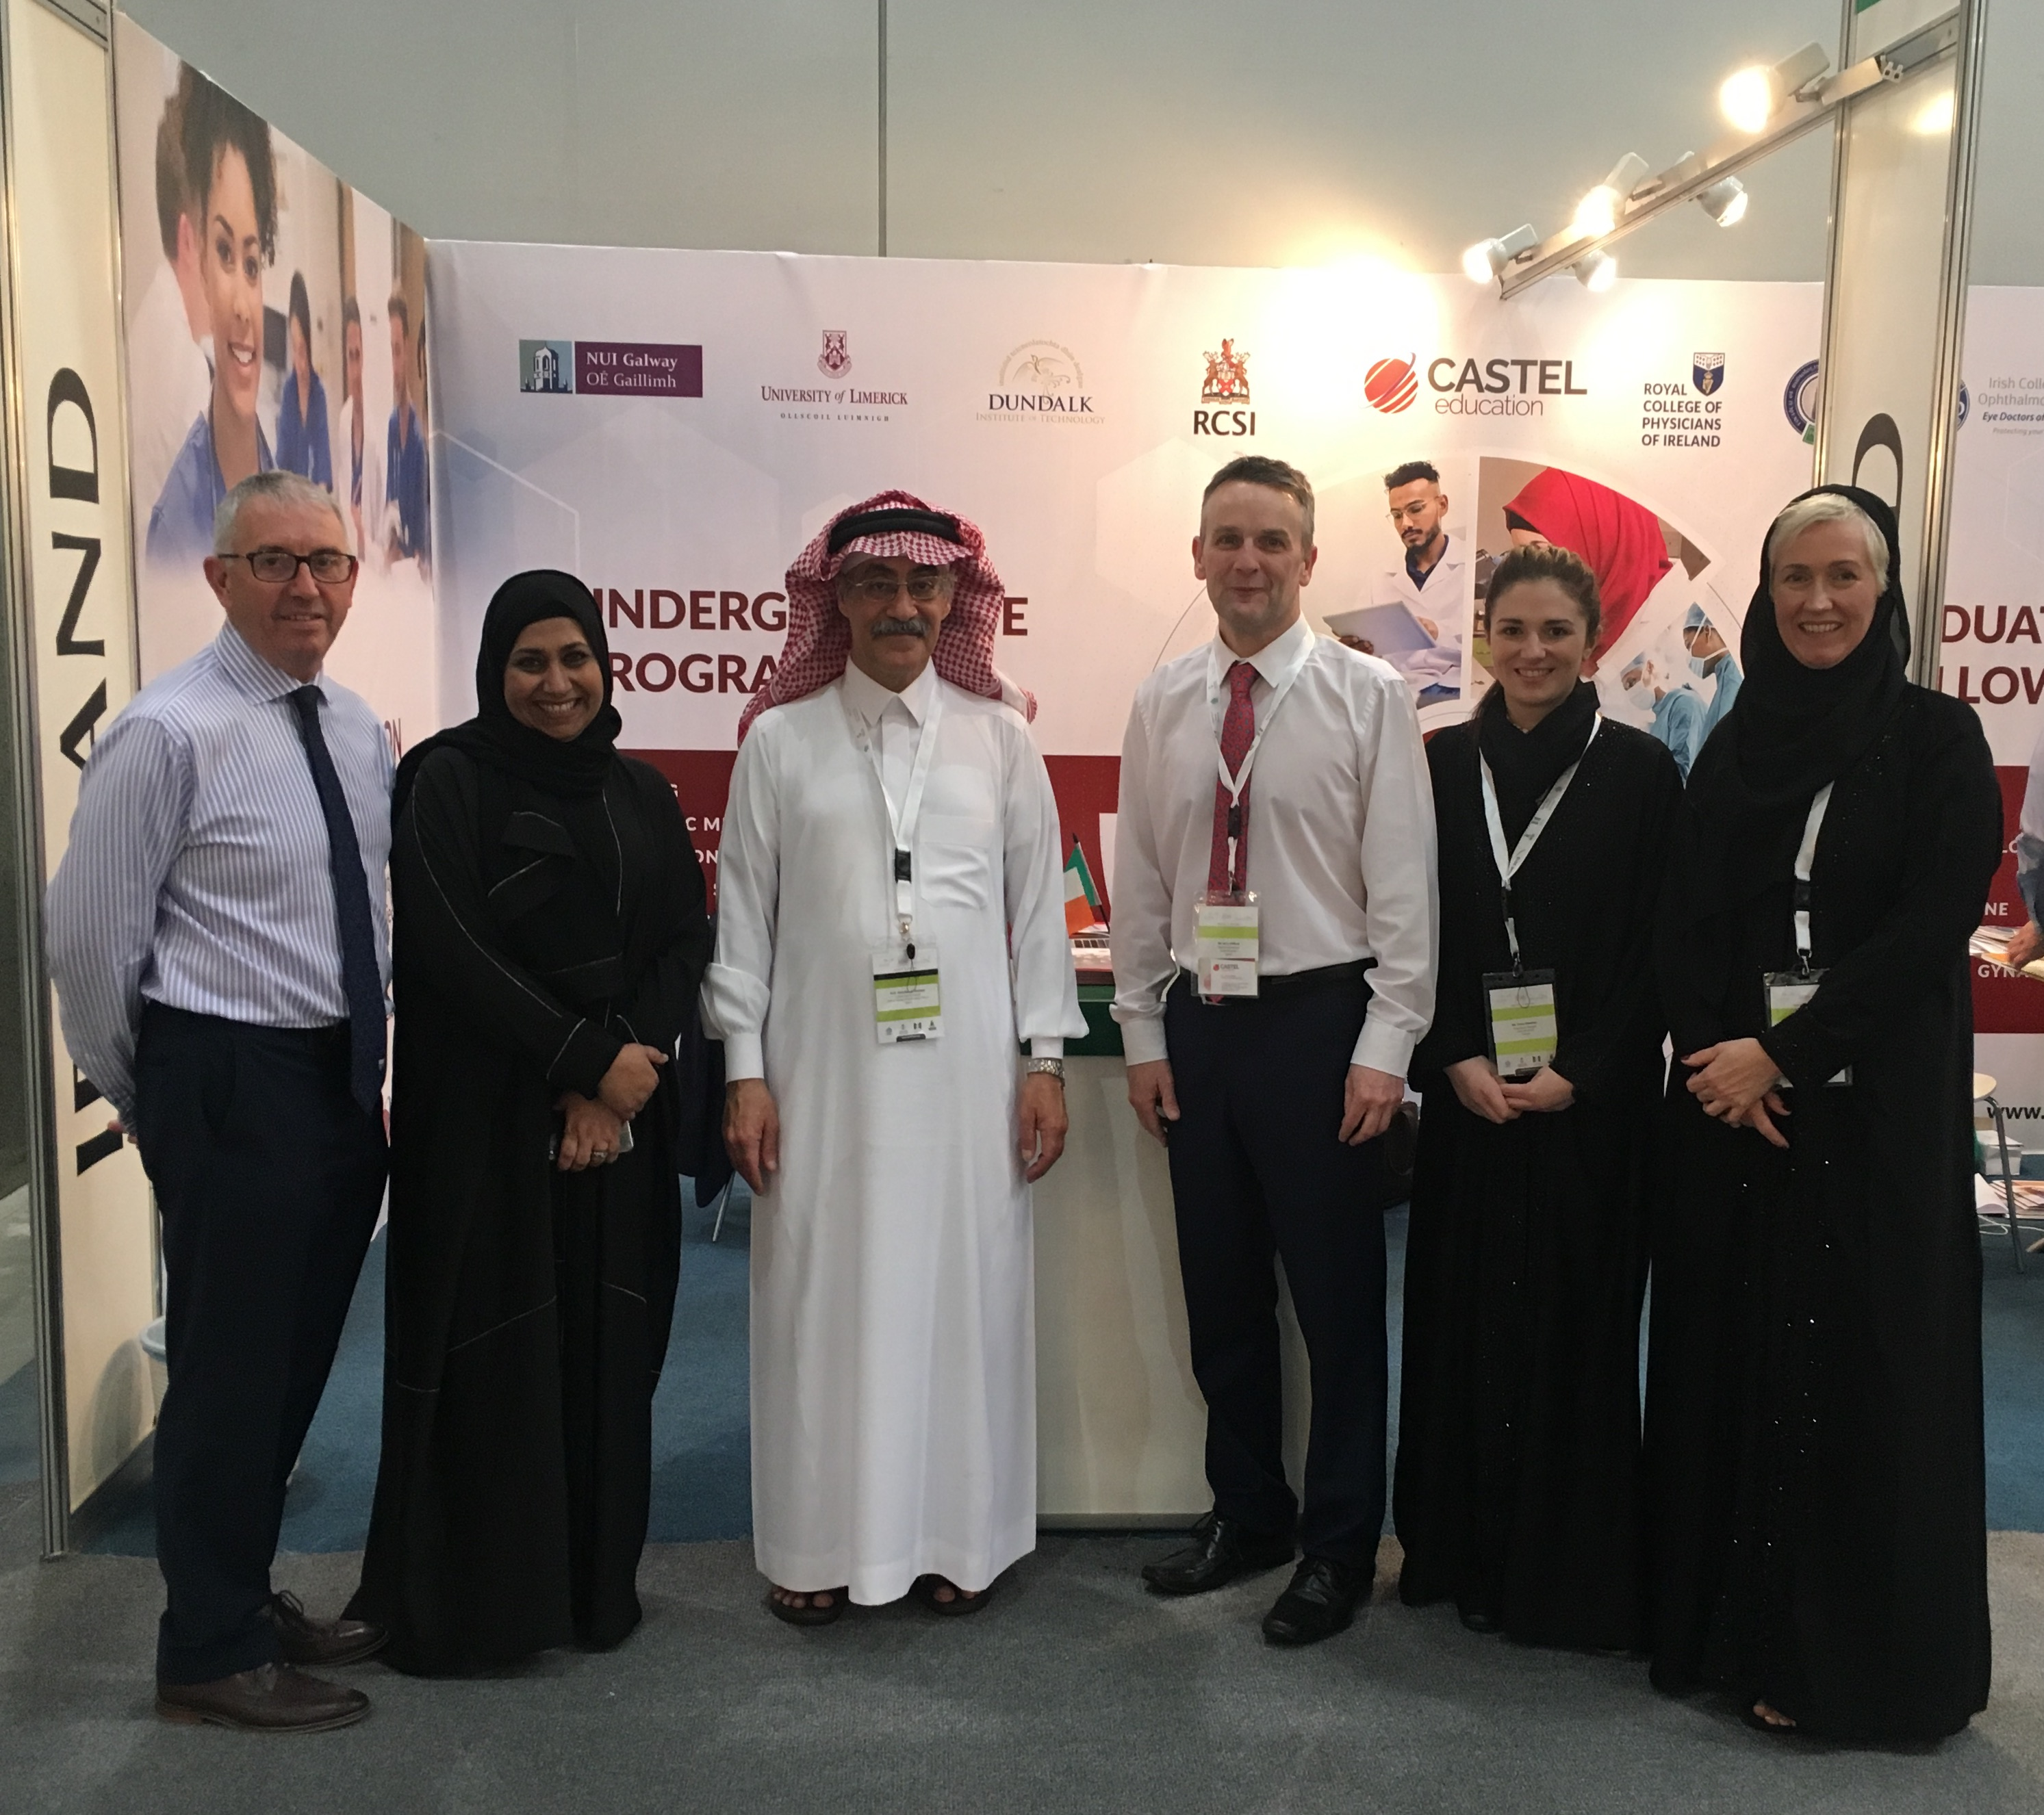 International Exhibition and Conference on Higher Education (IECHE) 2019